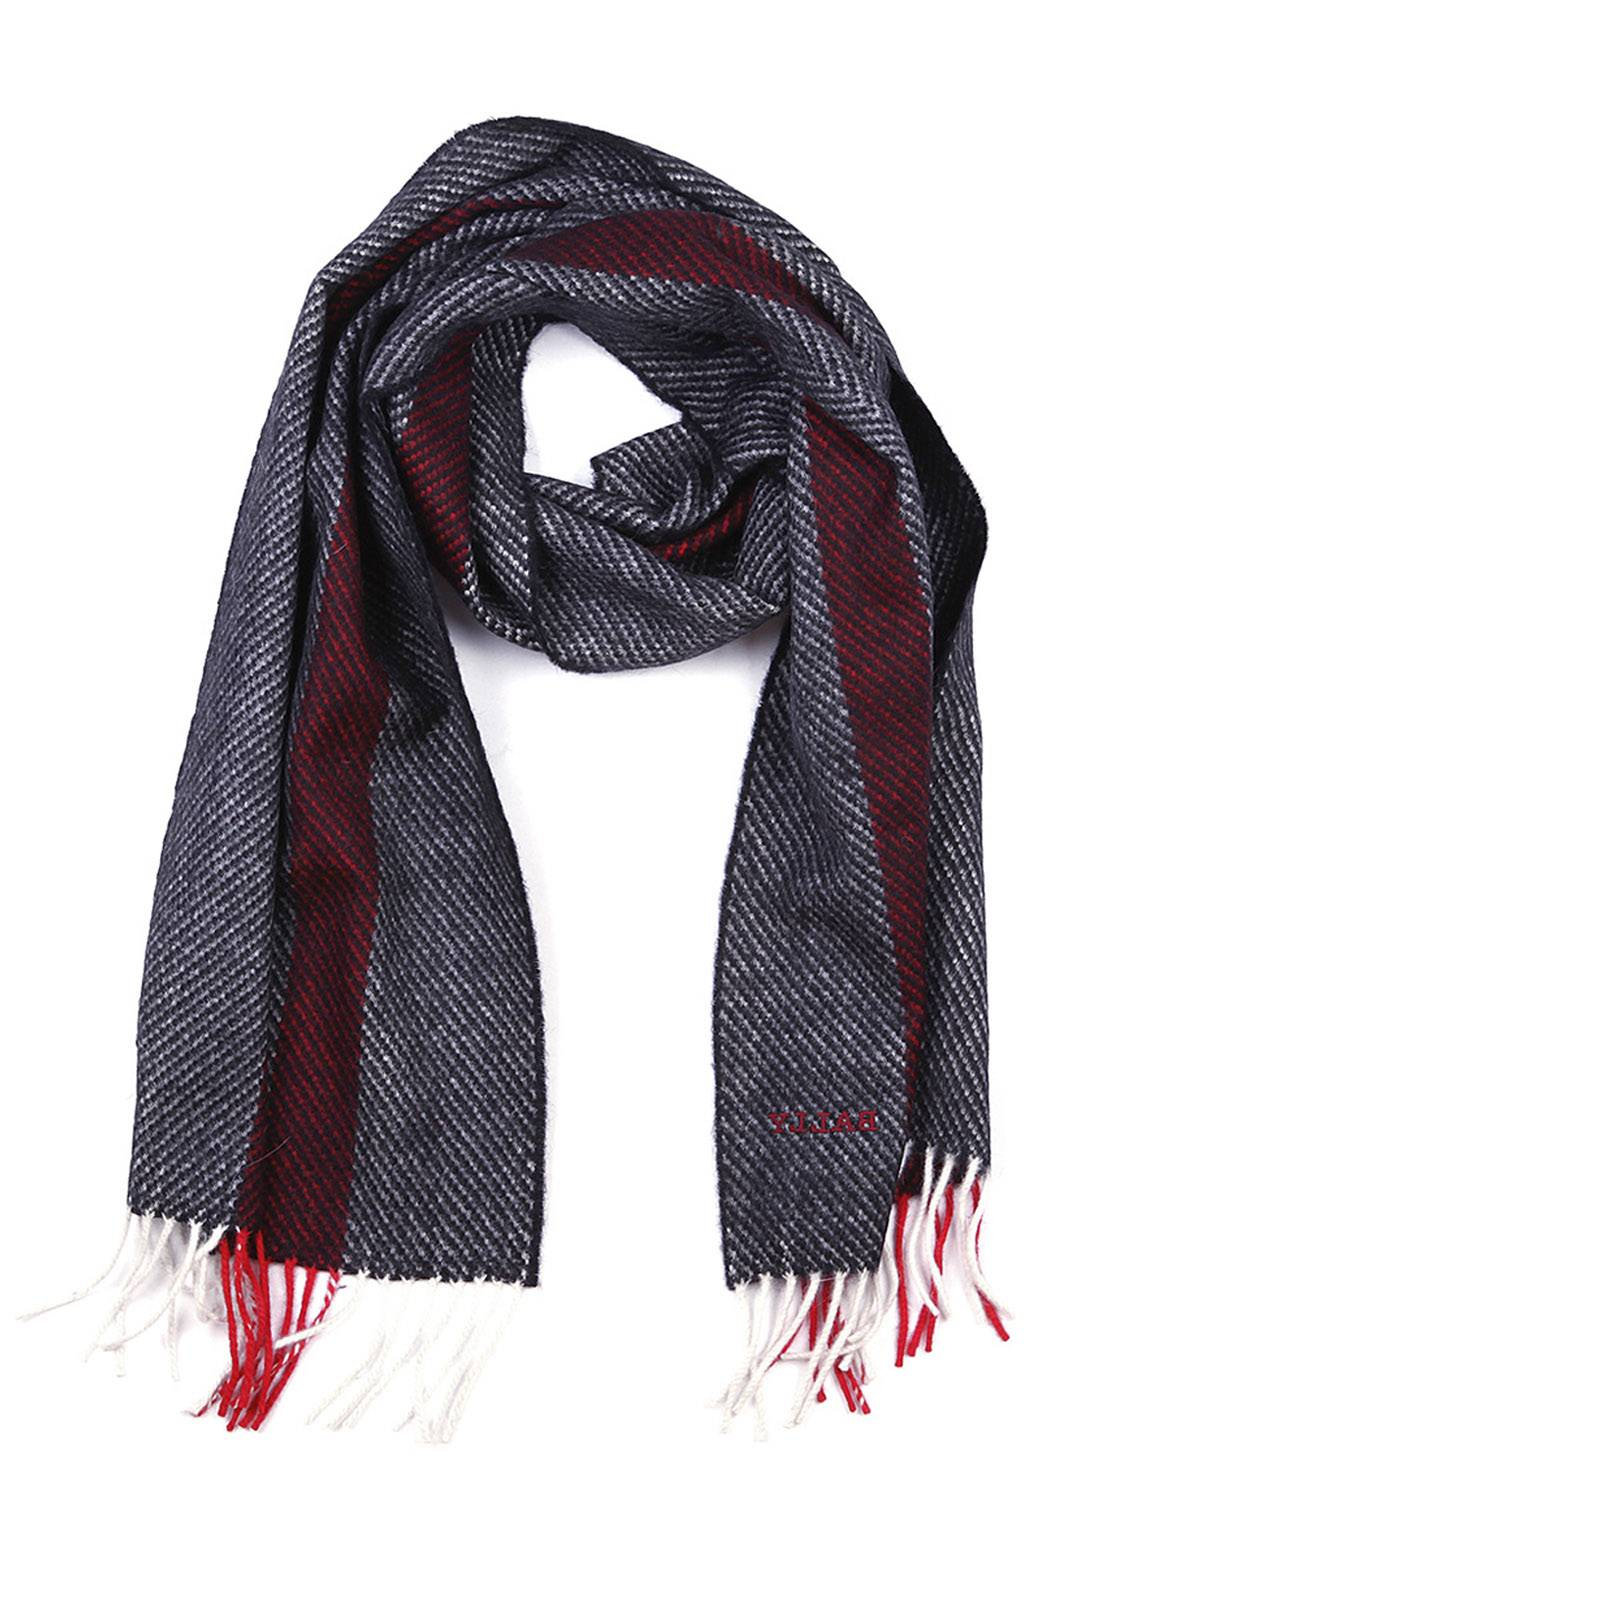 Bally Men's wool scarf multi bone jacquard  - Grey